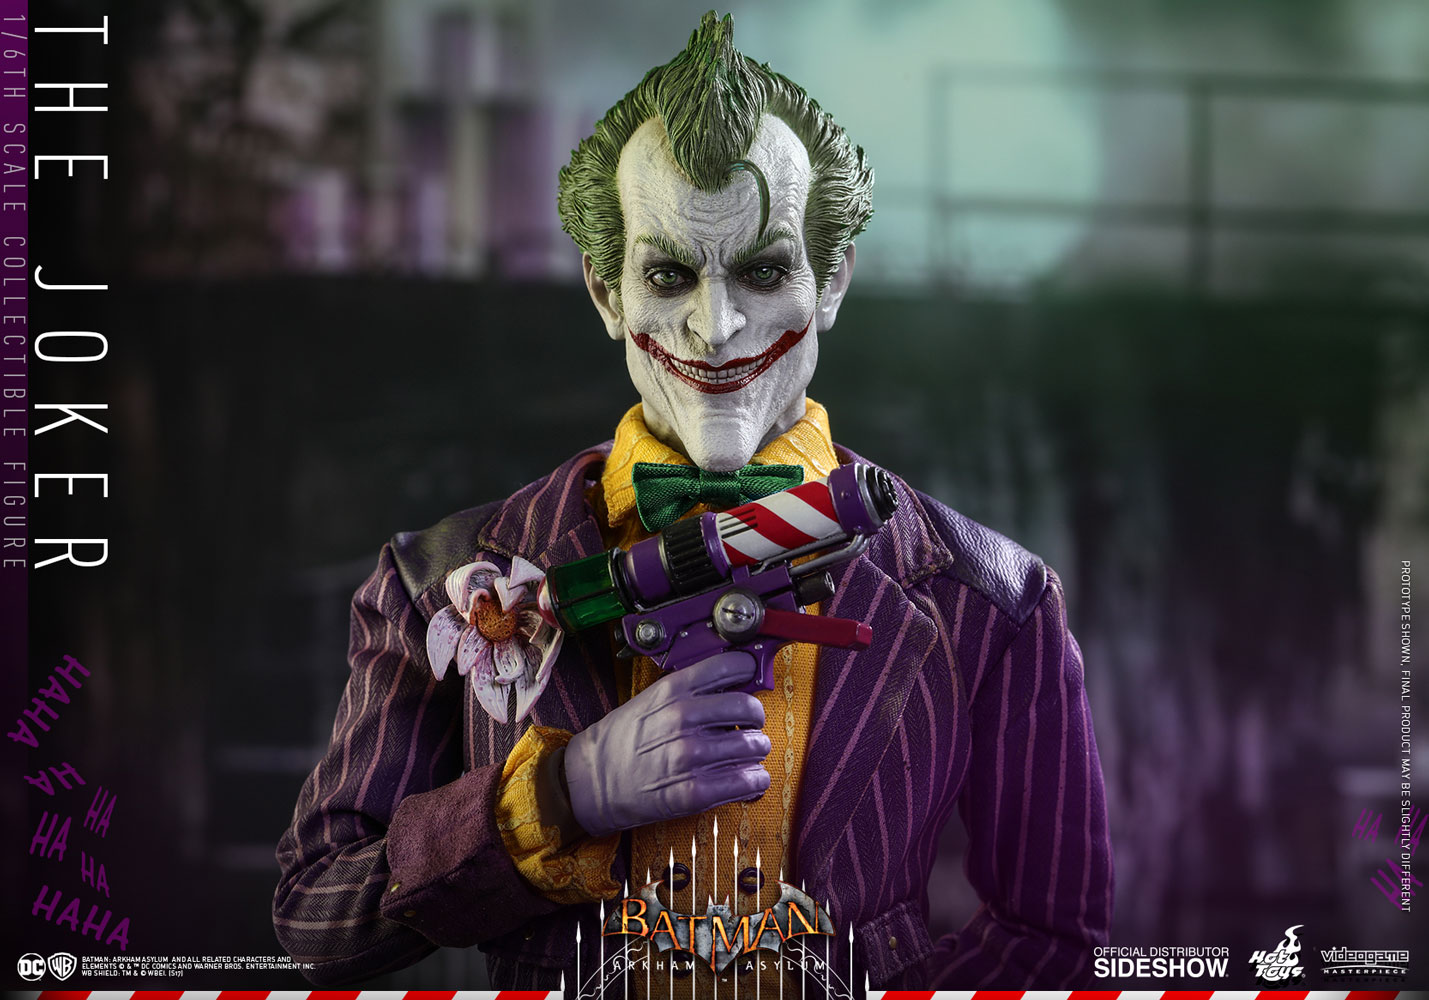 ... Hot Toys The Joker Sixth Scale Figure & DC Comics The Joker Sixth Scale Figure by Hot Toys | Sideshow ...